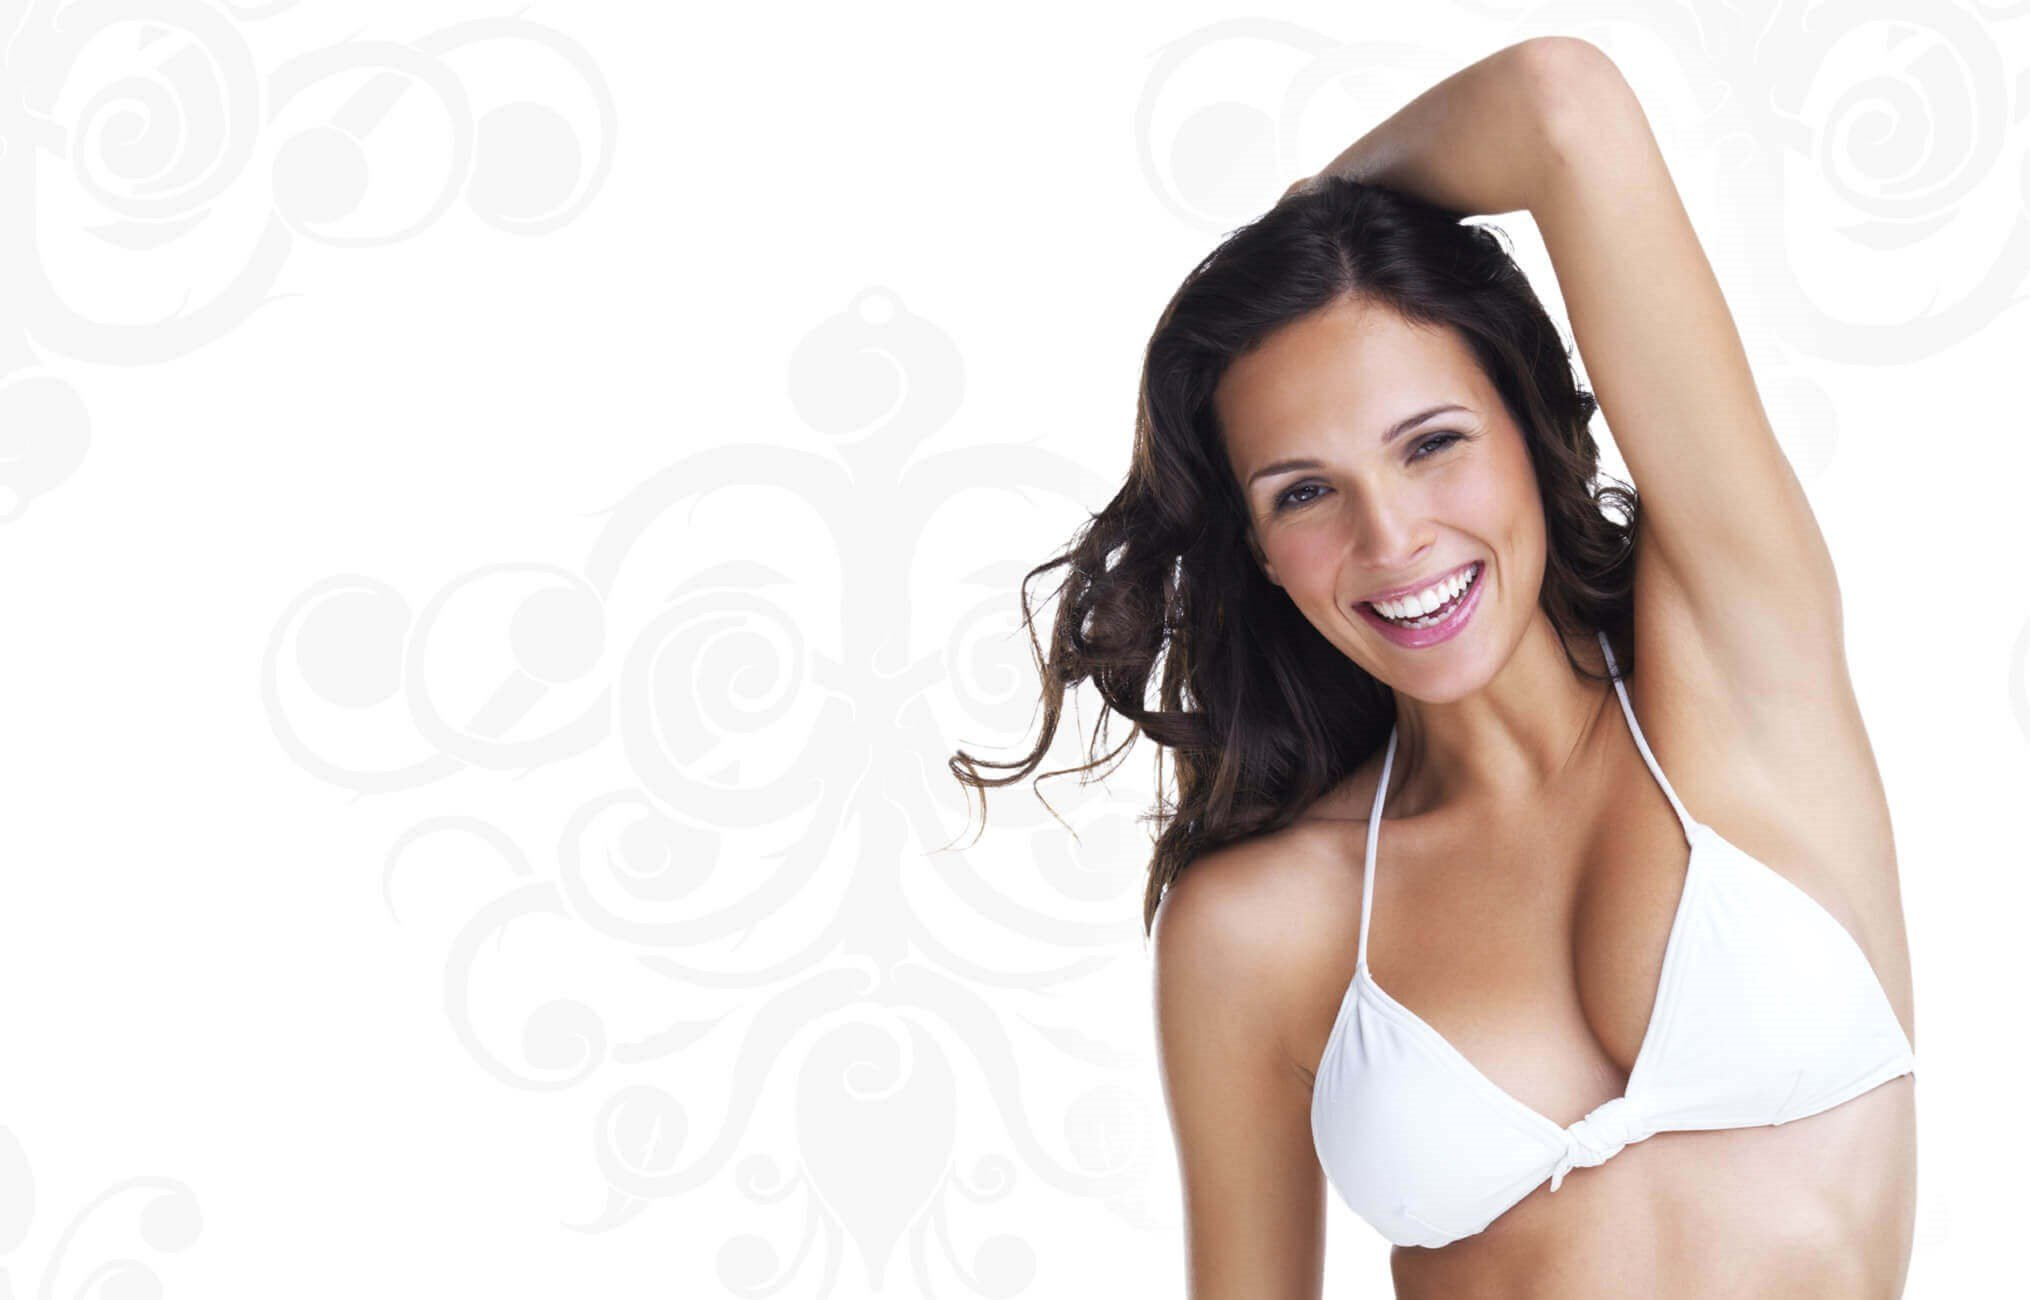 Gorgeous You - Customized treatments for the Breast, Body, Face and Skin.